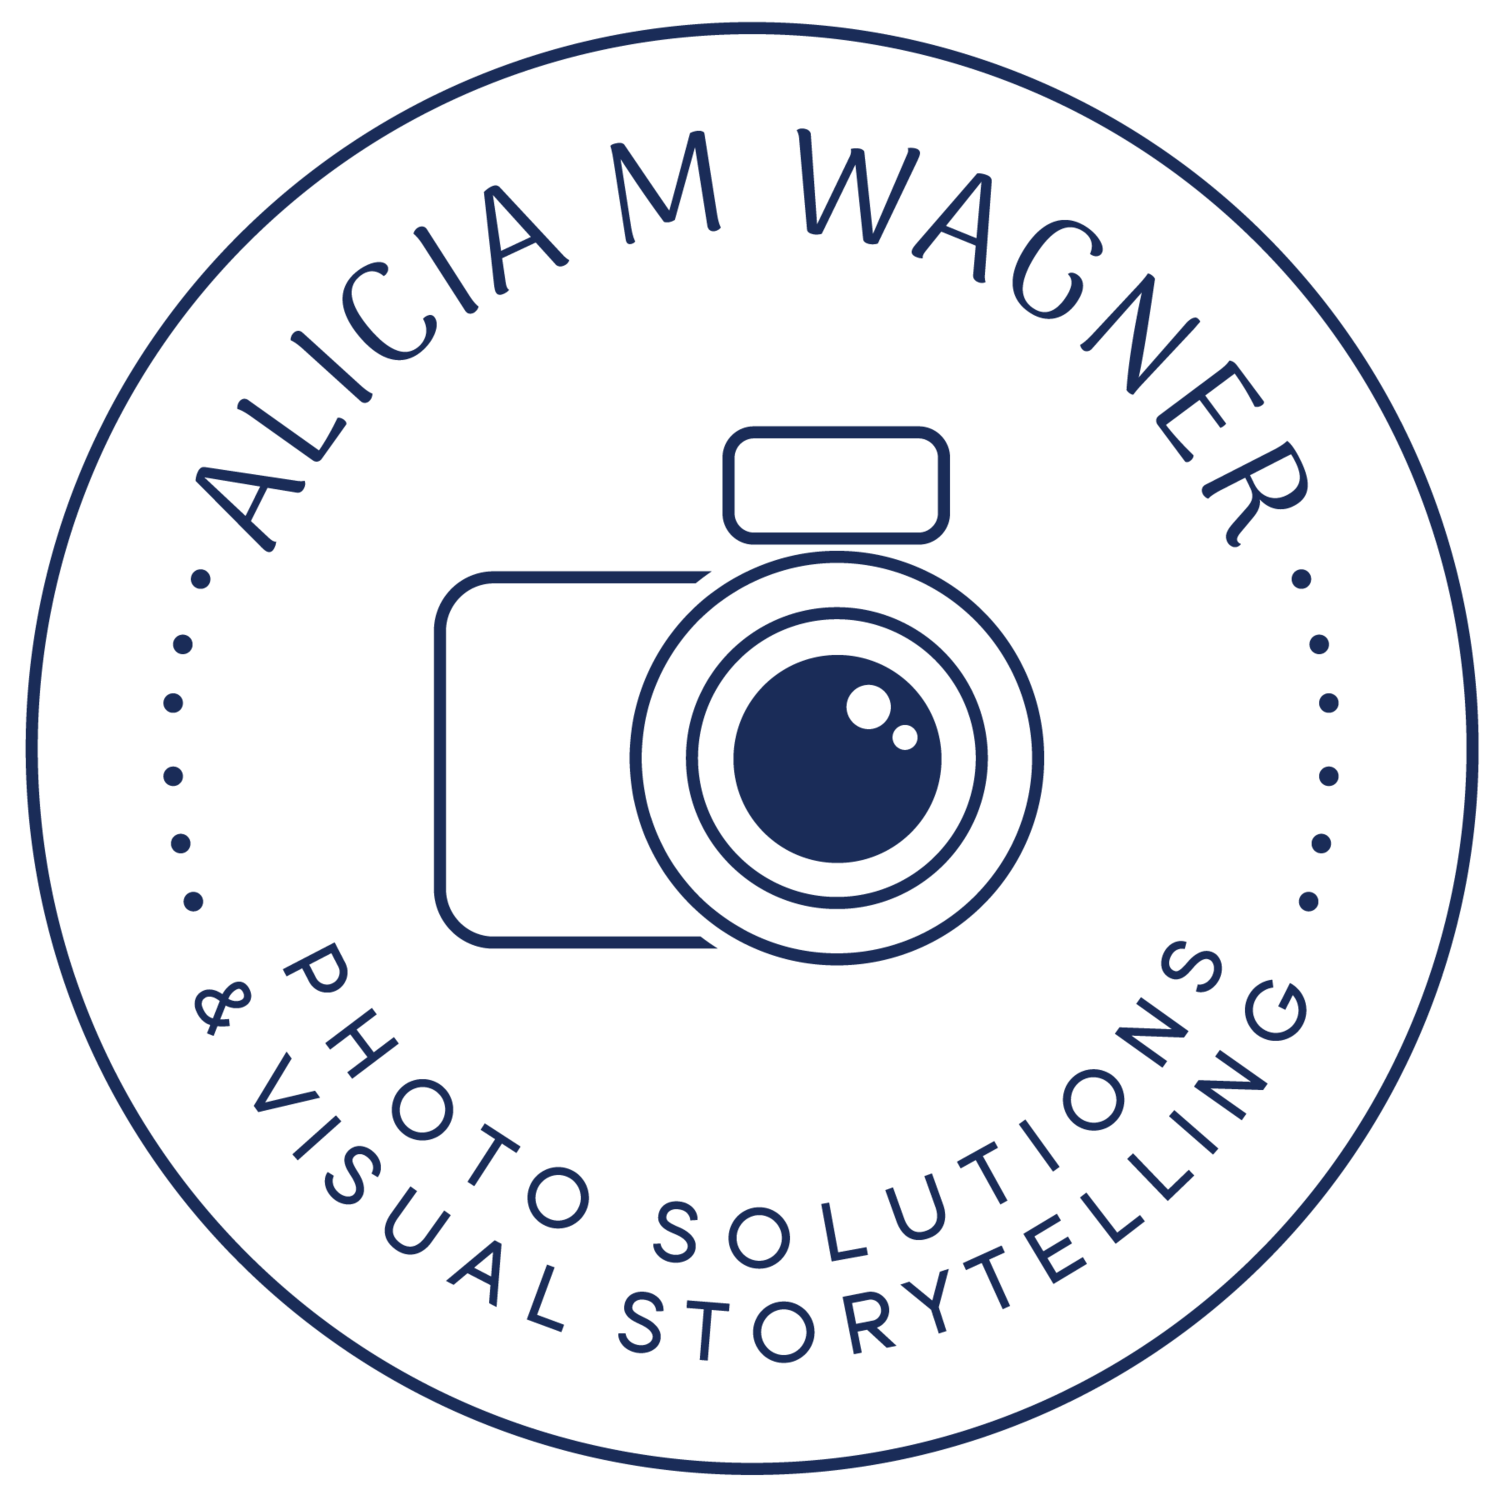 Alicia M Wagner <br><br>Photo Solutions & Storytelling